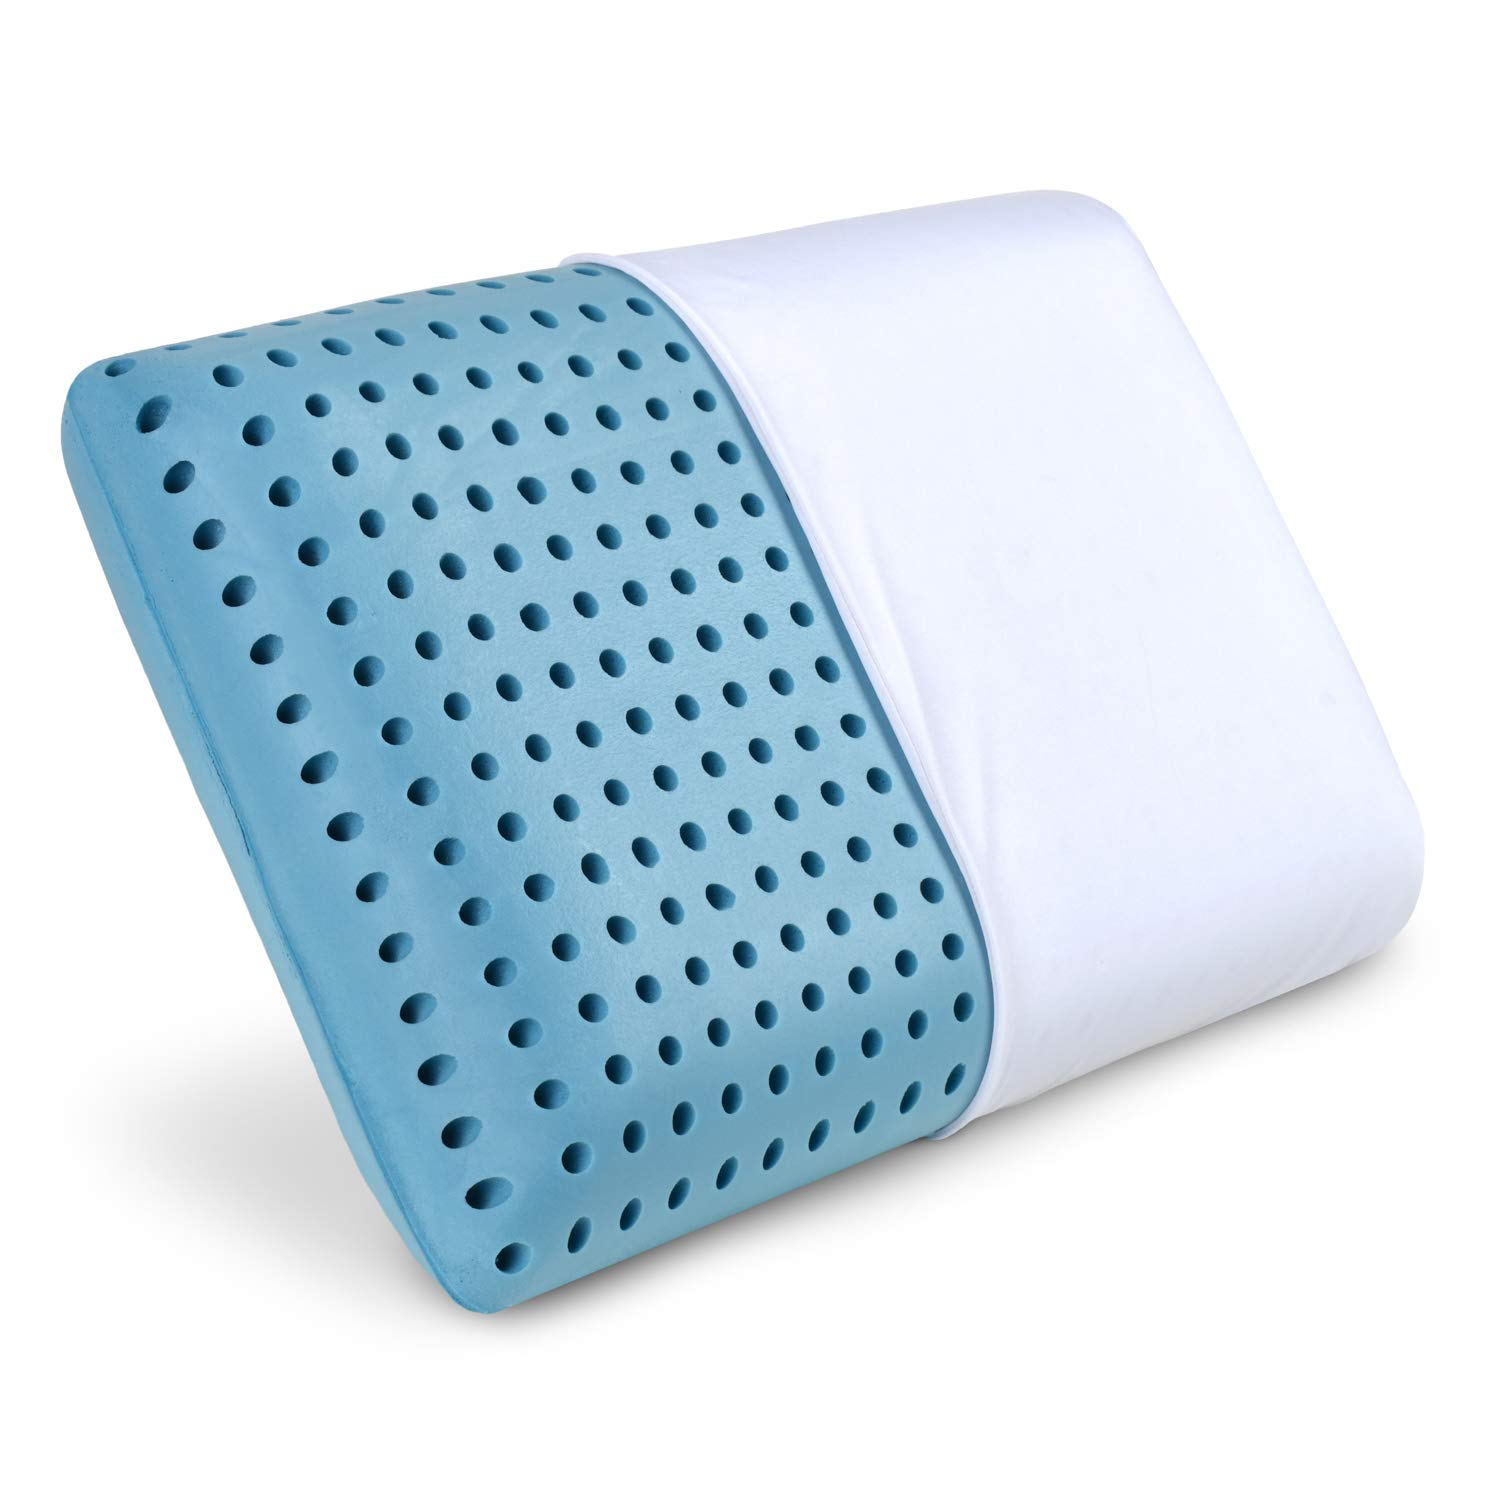 PharMeDoc Blue Cooling Memory Foam Pillow Ventilated Hole-Punch Memory Foam Bed Pillow Infused with Cooling Gel incl. Removable Pillow Case - Standard Size...